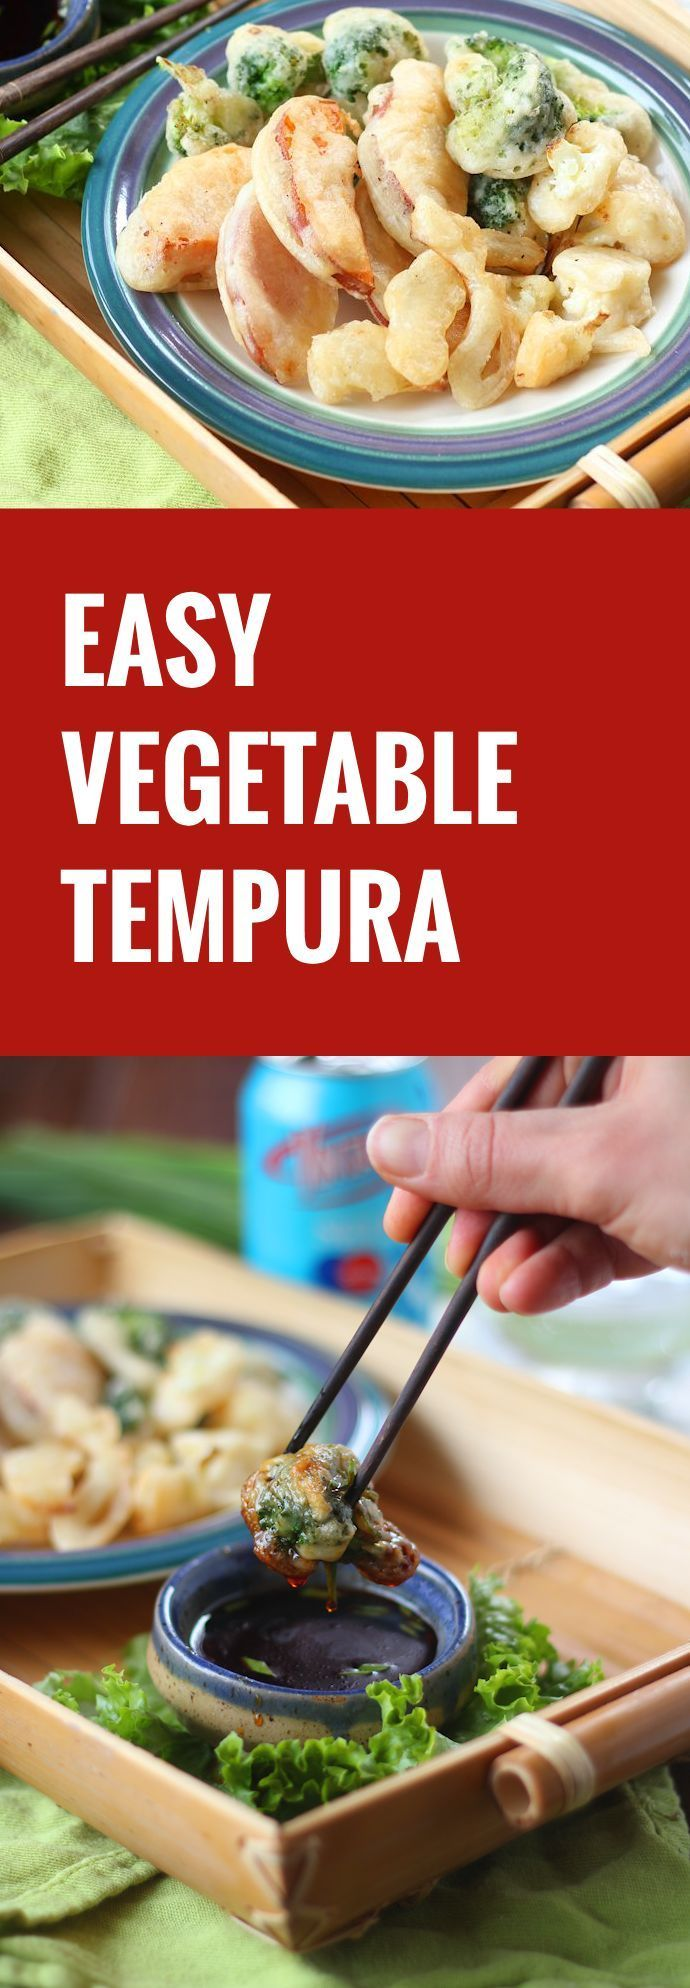 These tempura vegetables are coated in a light, three ingredient batter, shallow fried to crispy perfection, and served with soy sesame dipping sauce.